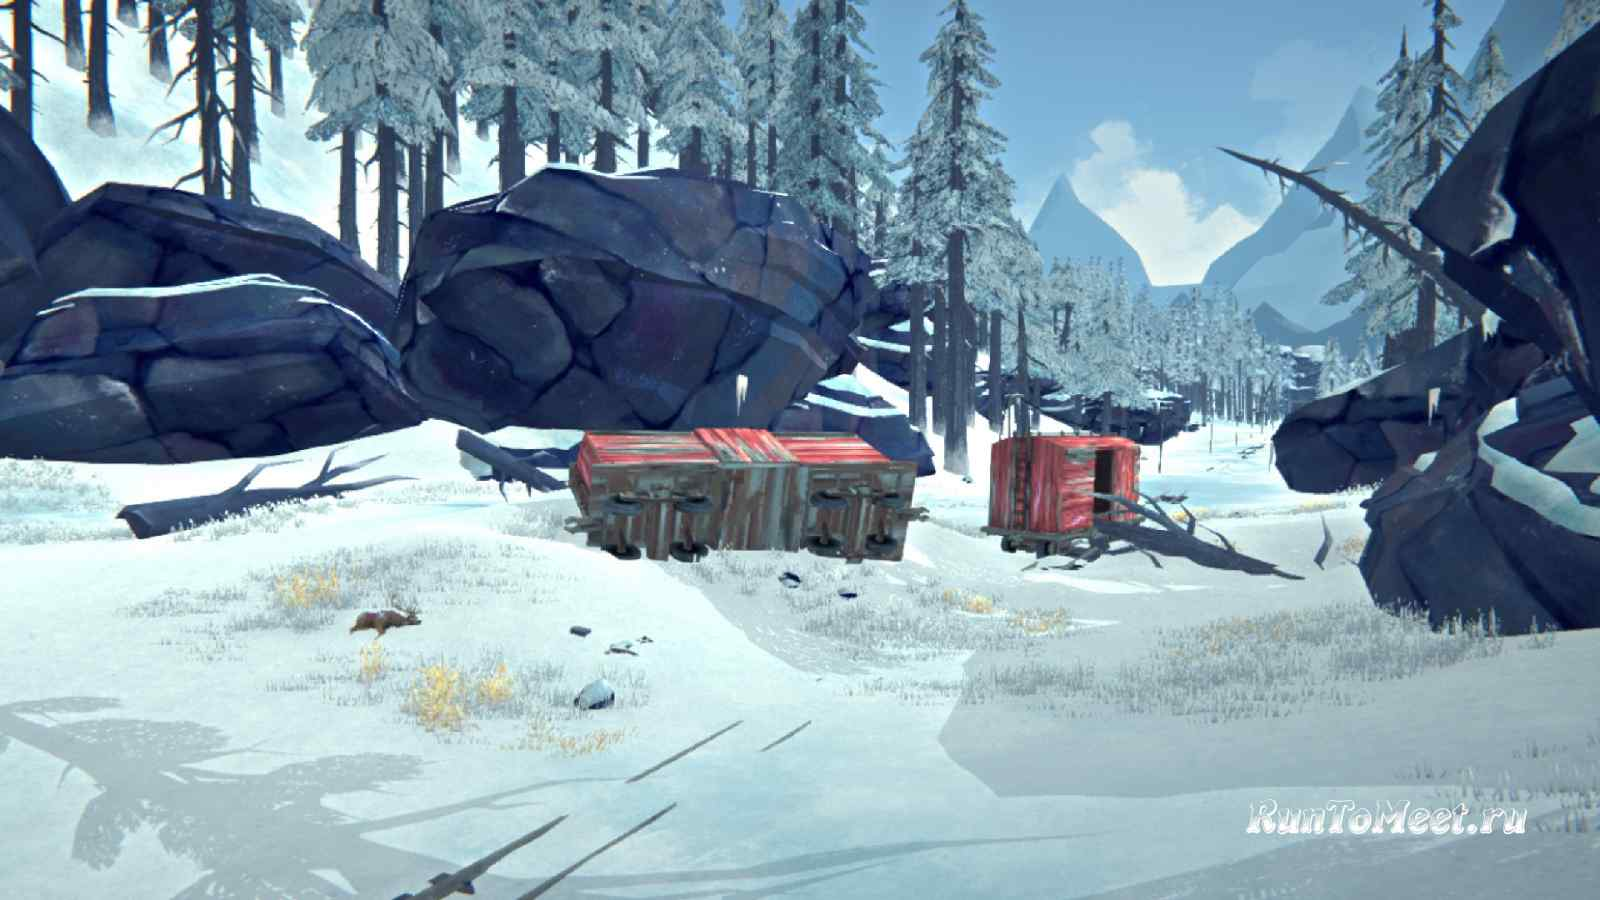 Вагоны сошедшие с рельсов, на Загадочном озере, в The long dark